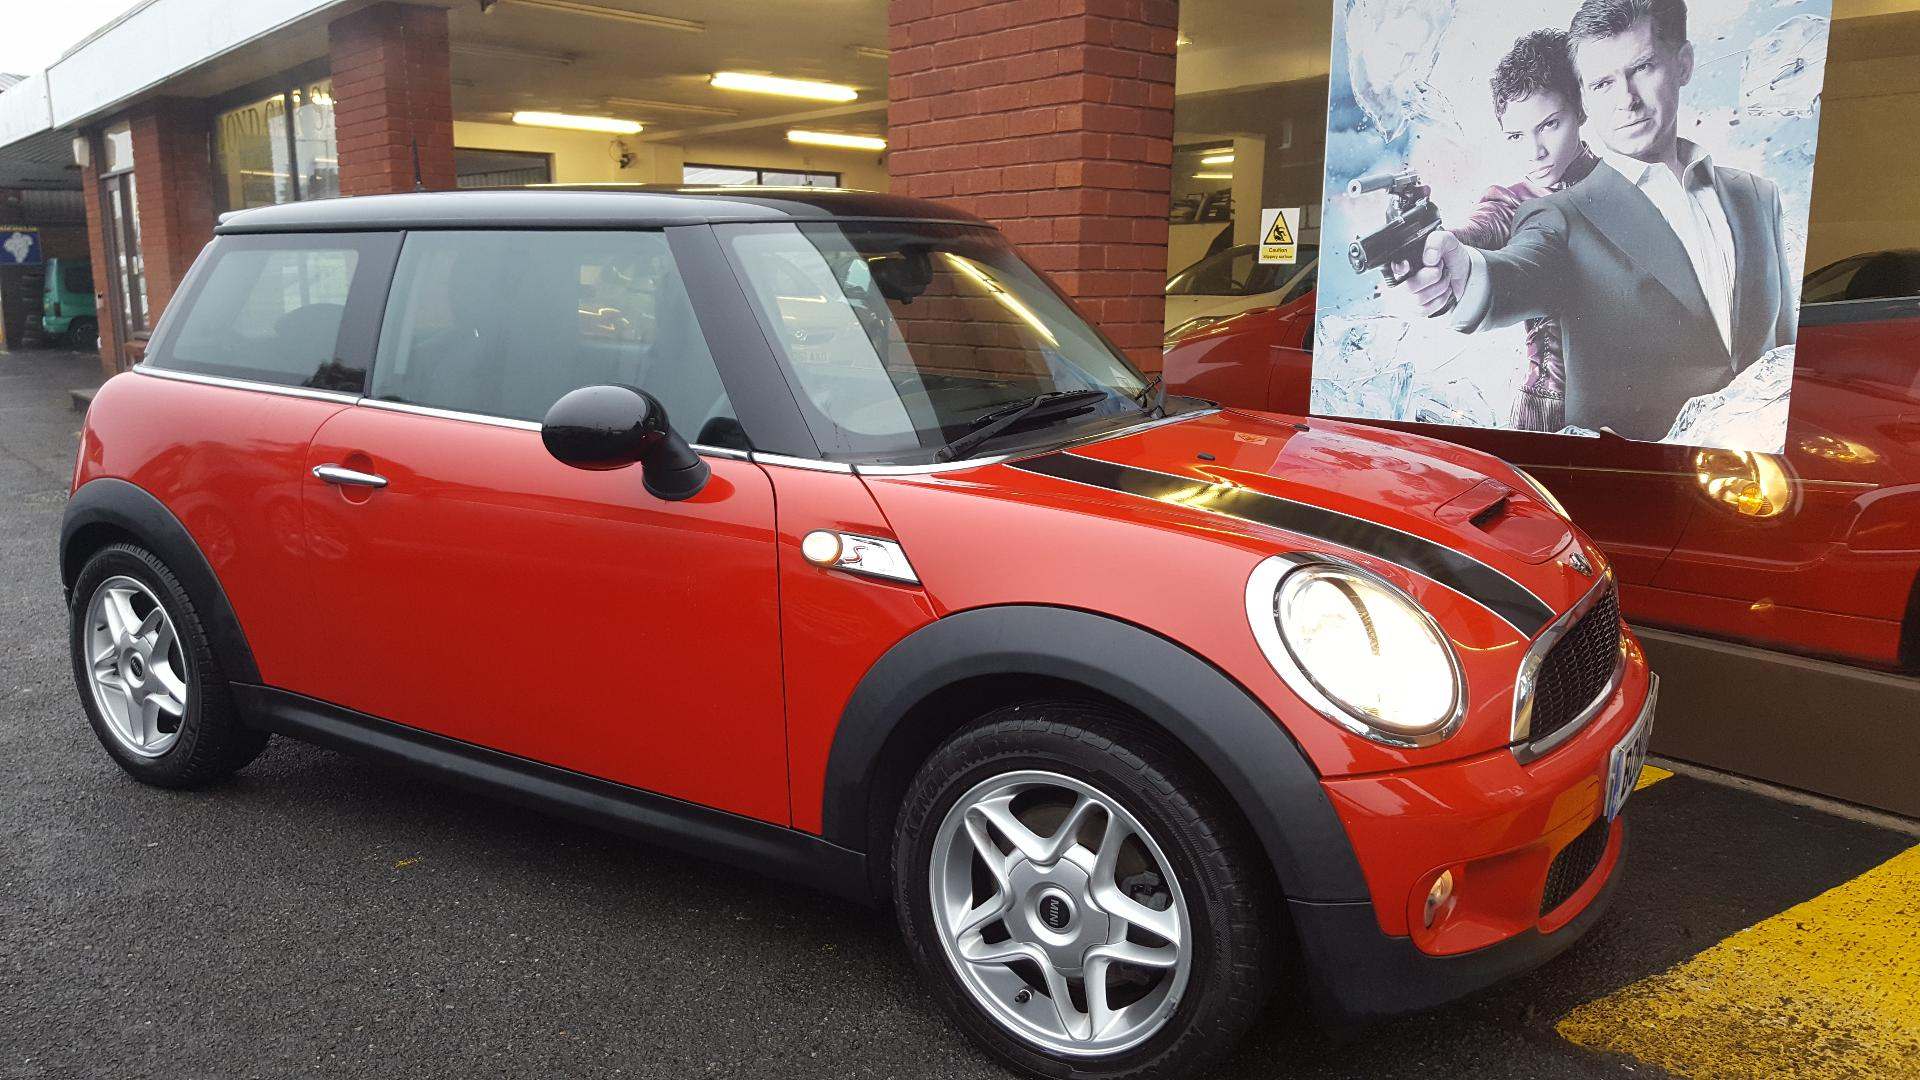 2009 (59) MINI HATCHBACK 1.6 Cooper S Hot Hatch For Sale In Swansea, Glamorgan